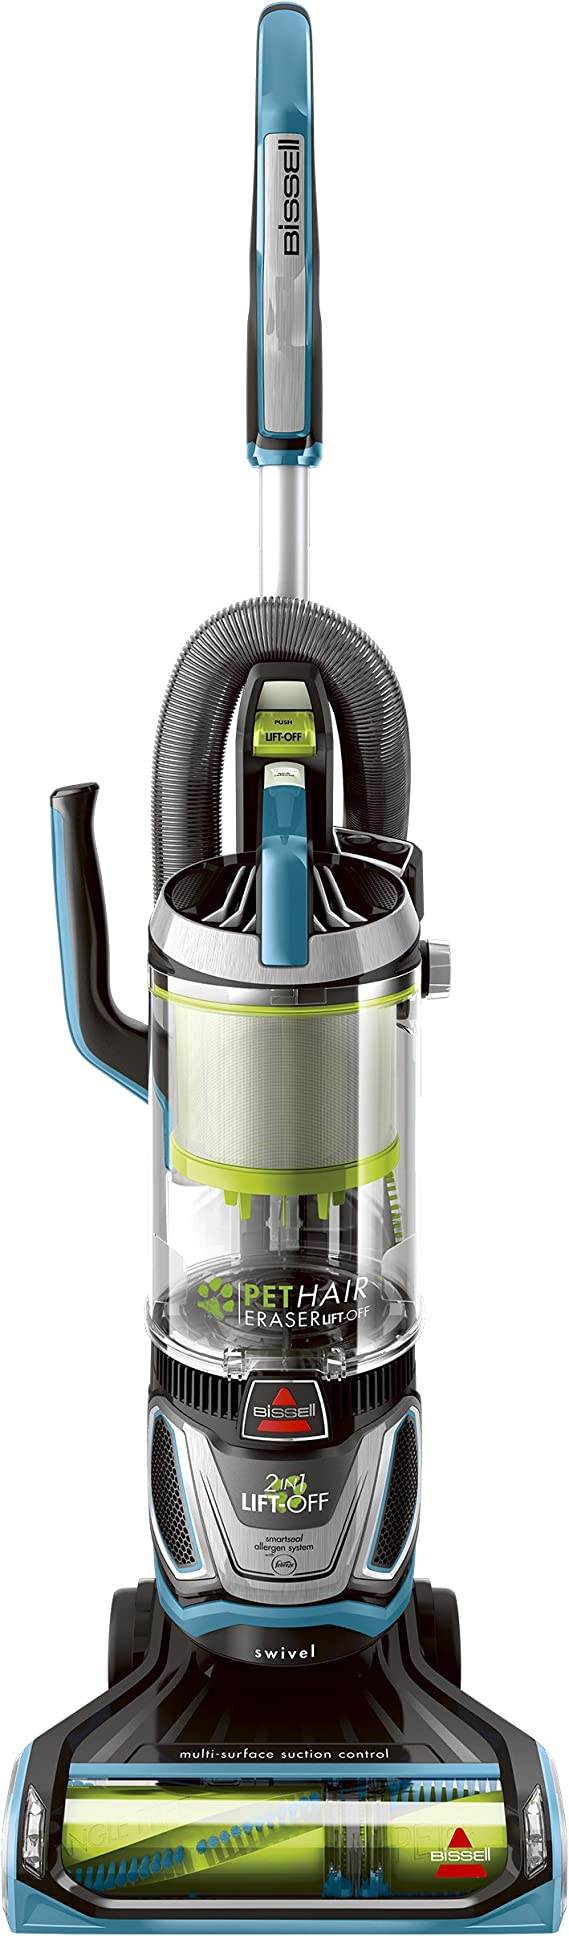 Bissell Pet Hair Eraser Lift Off Bagless Upright Vacuum, 20874, Blue